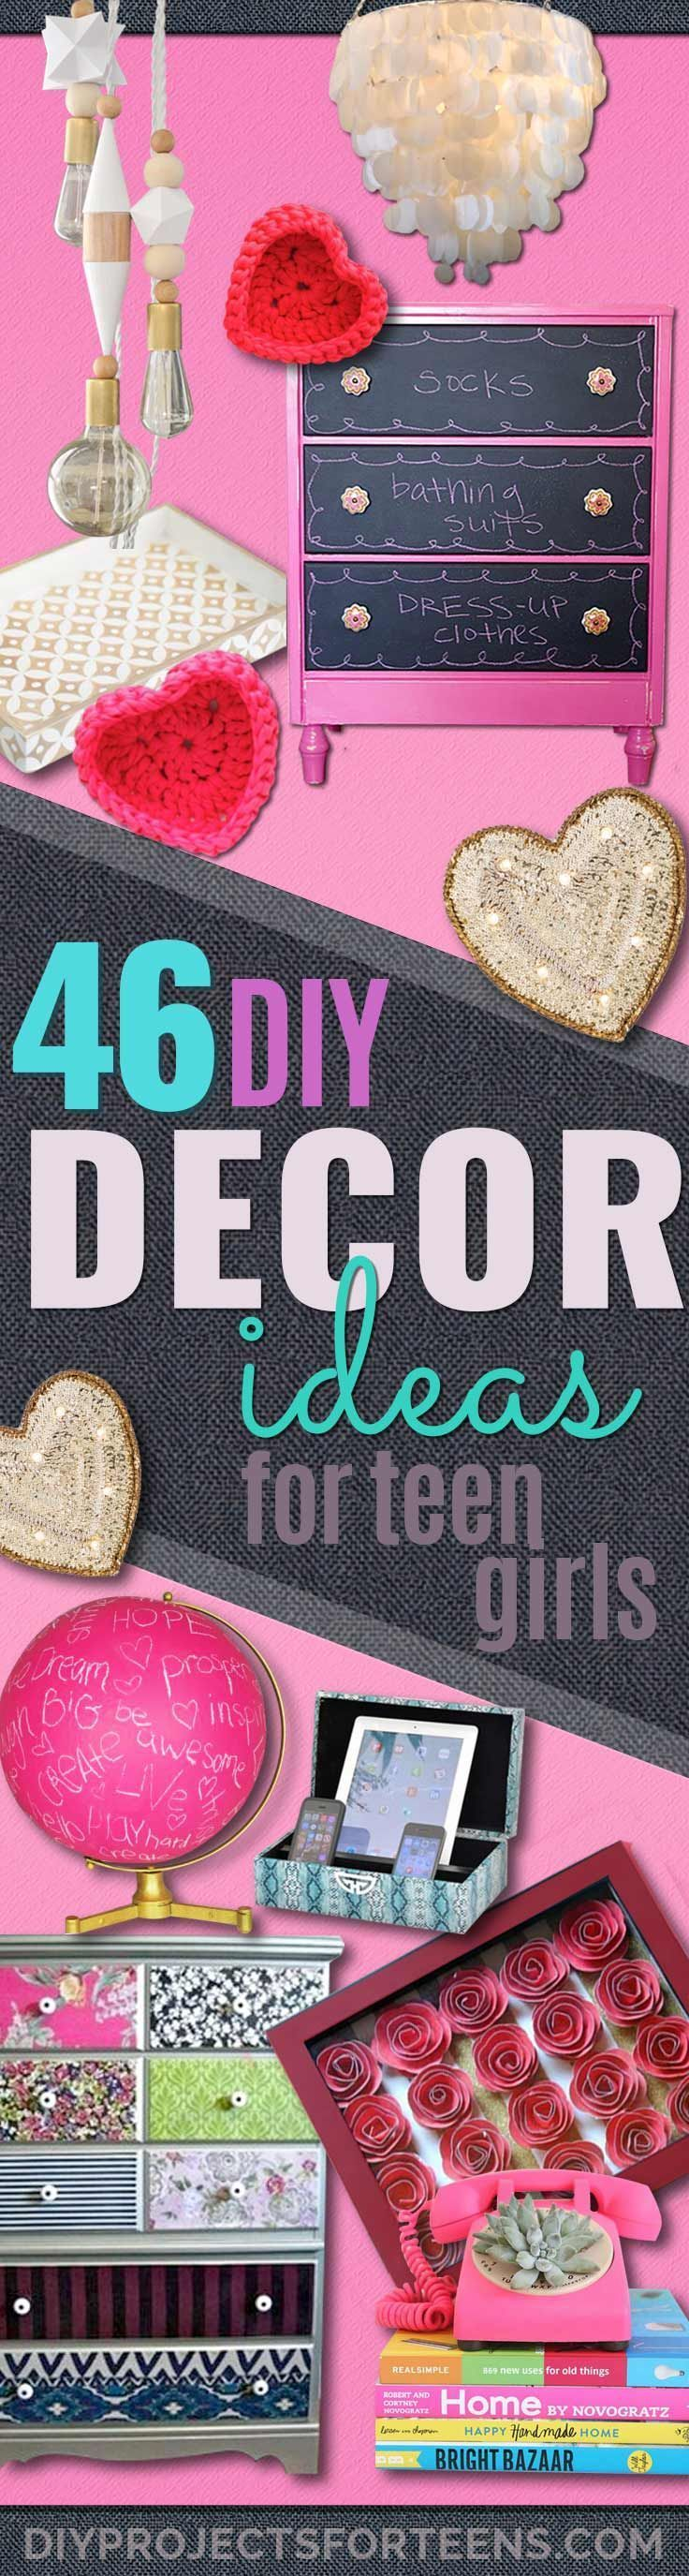 1000 Images About Cool DIY Ideas On Pinterest Painted Furniture Diy Teen